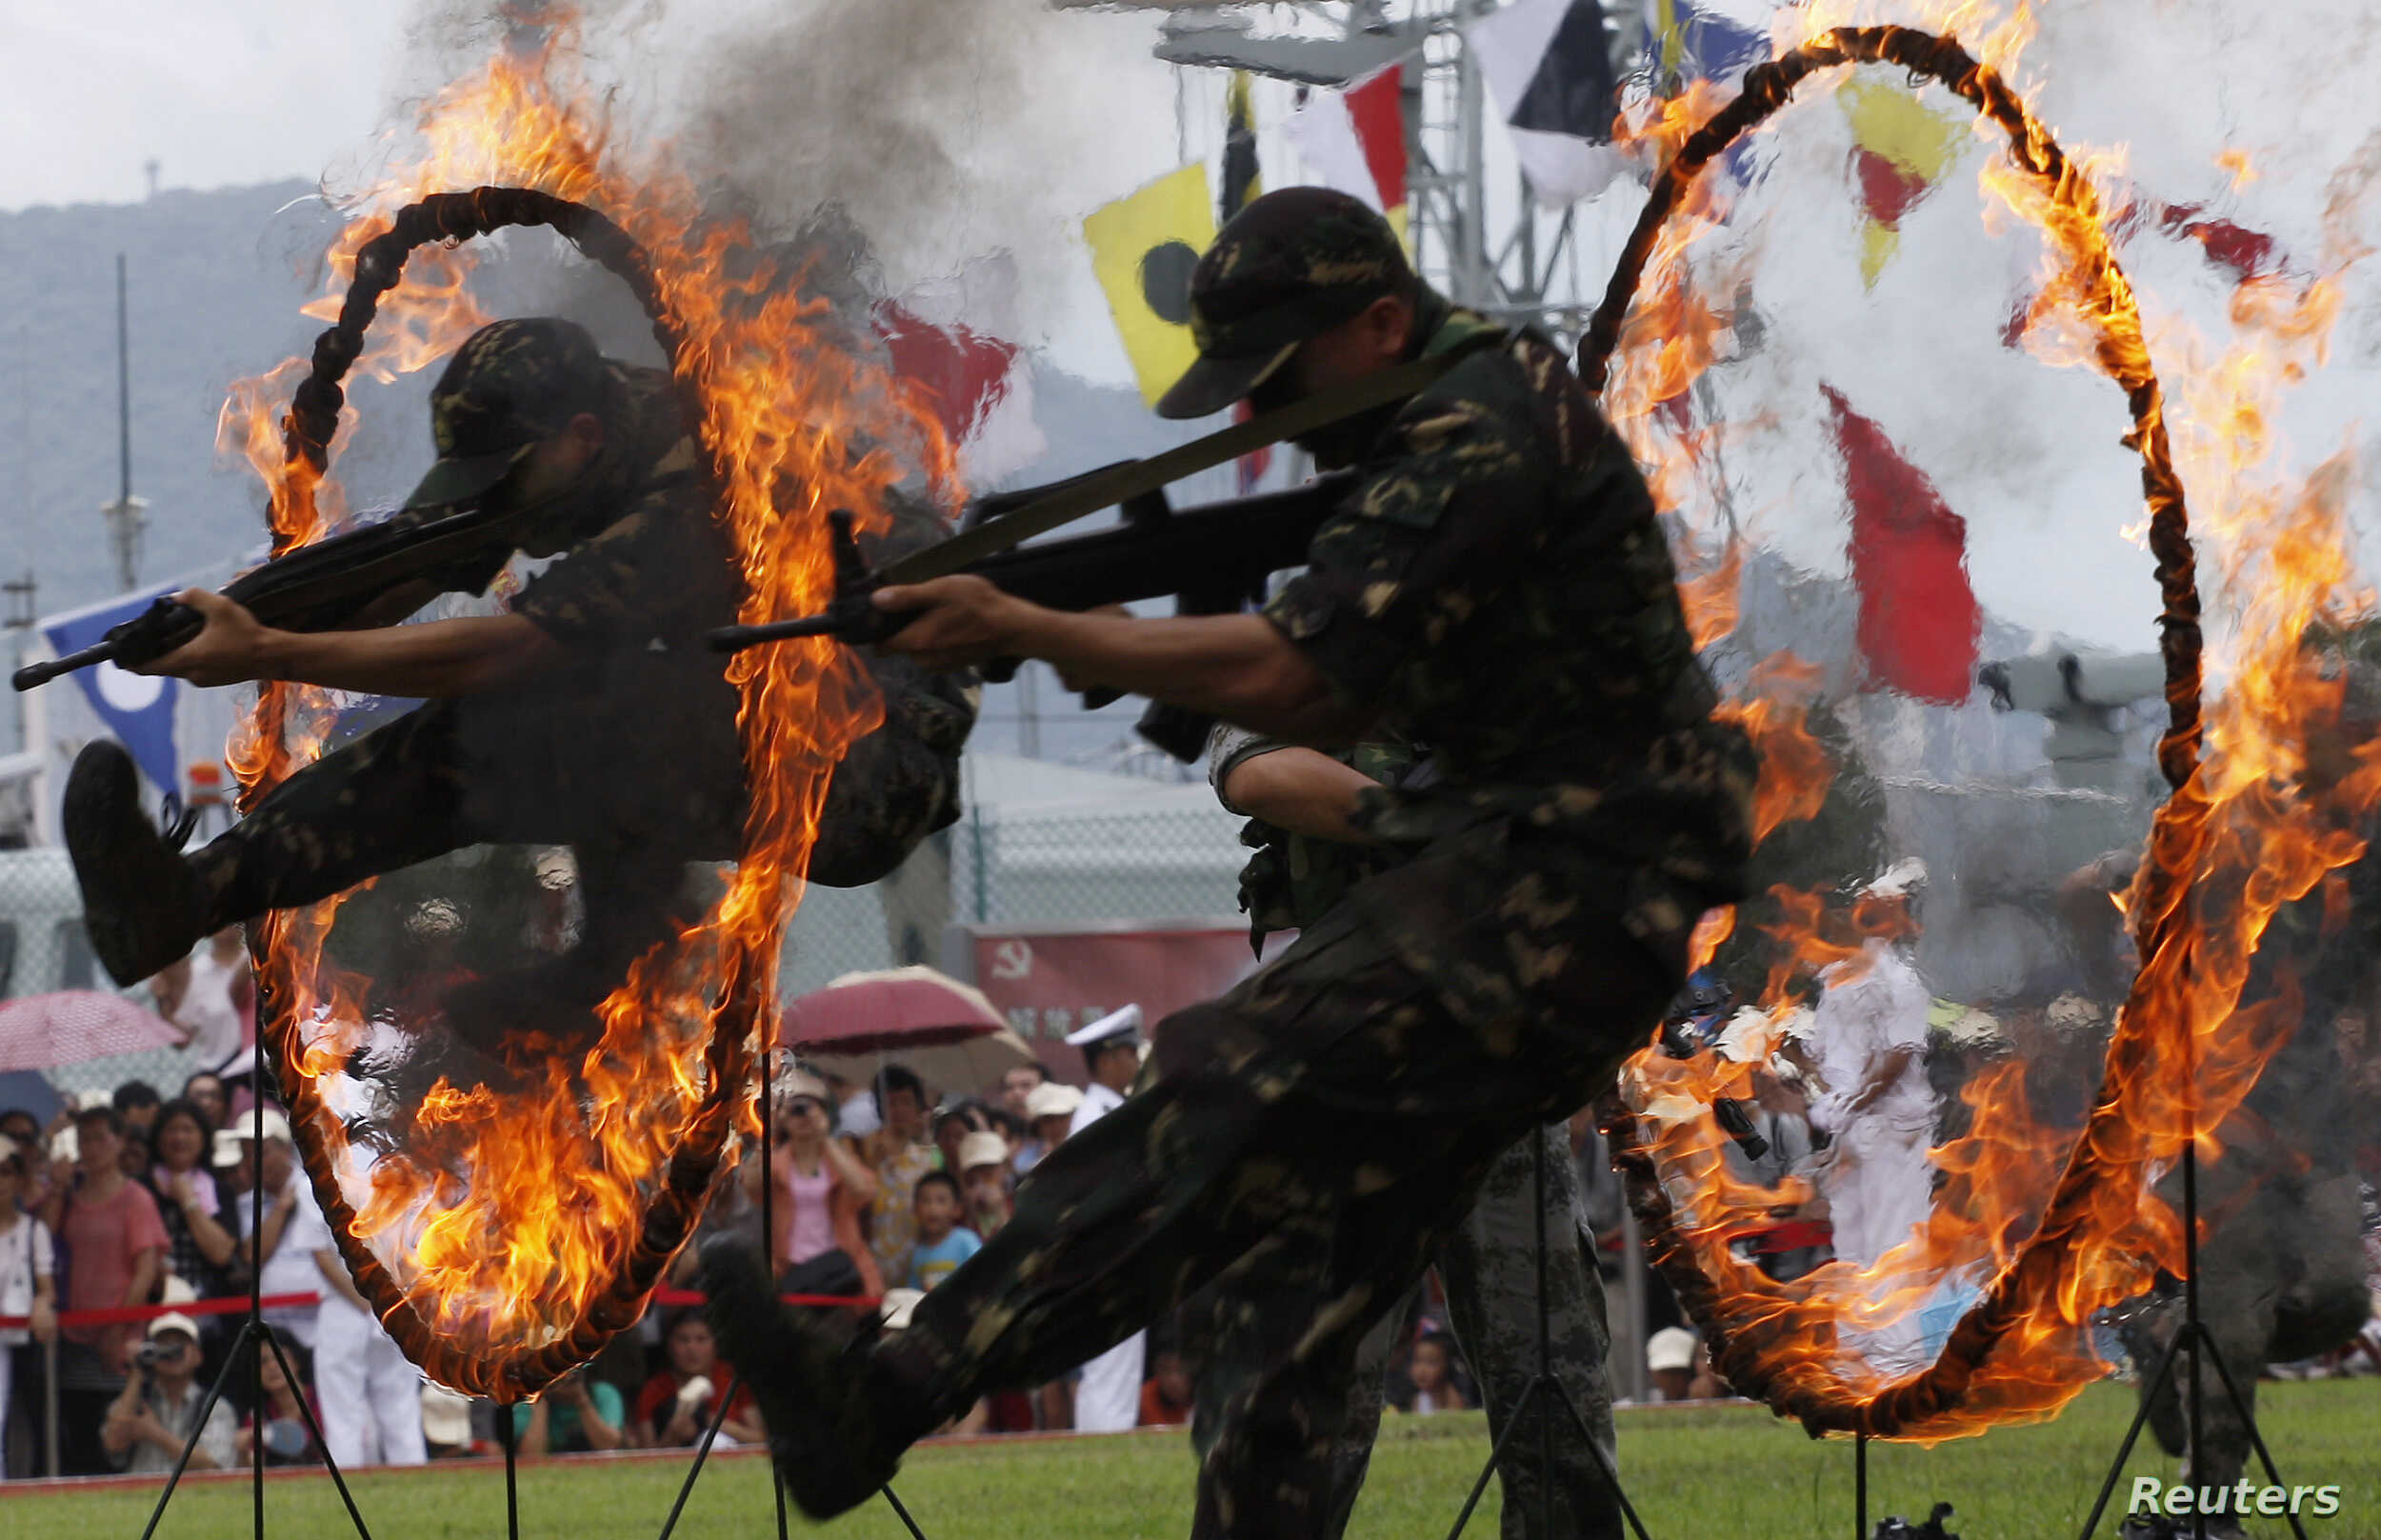 Chinese People's Liberation Army (PLA) soldiers jump through rings of fire in a war game as part of the show for the public during an open day at the Ngong Shuen Chau Naval Base on Hong Kong's Stonecutters Island, July 28, 2012.